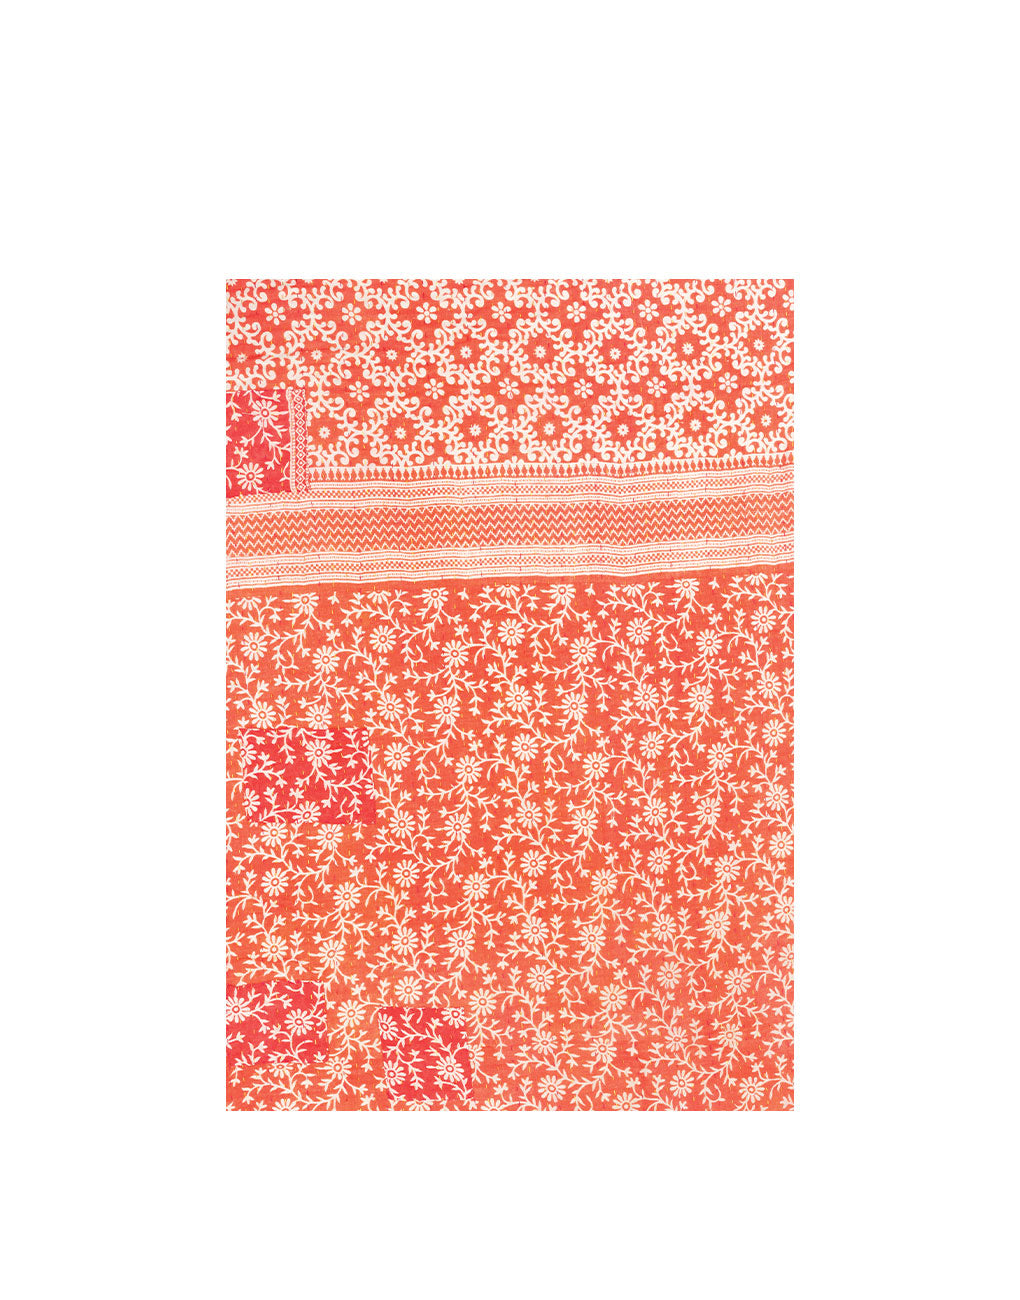 Small Kantha Quilt - No. 600 | The Little Market